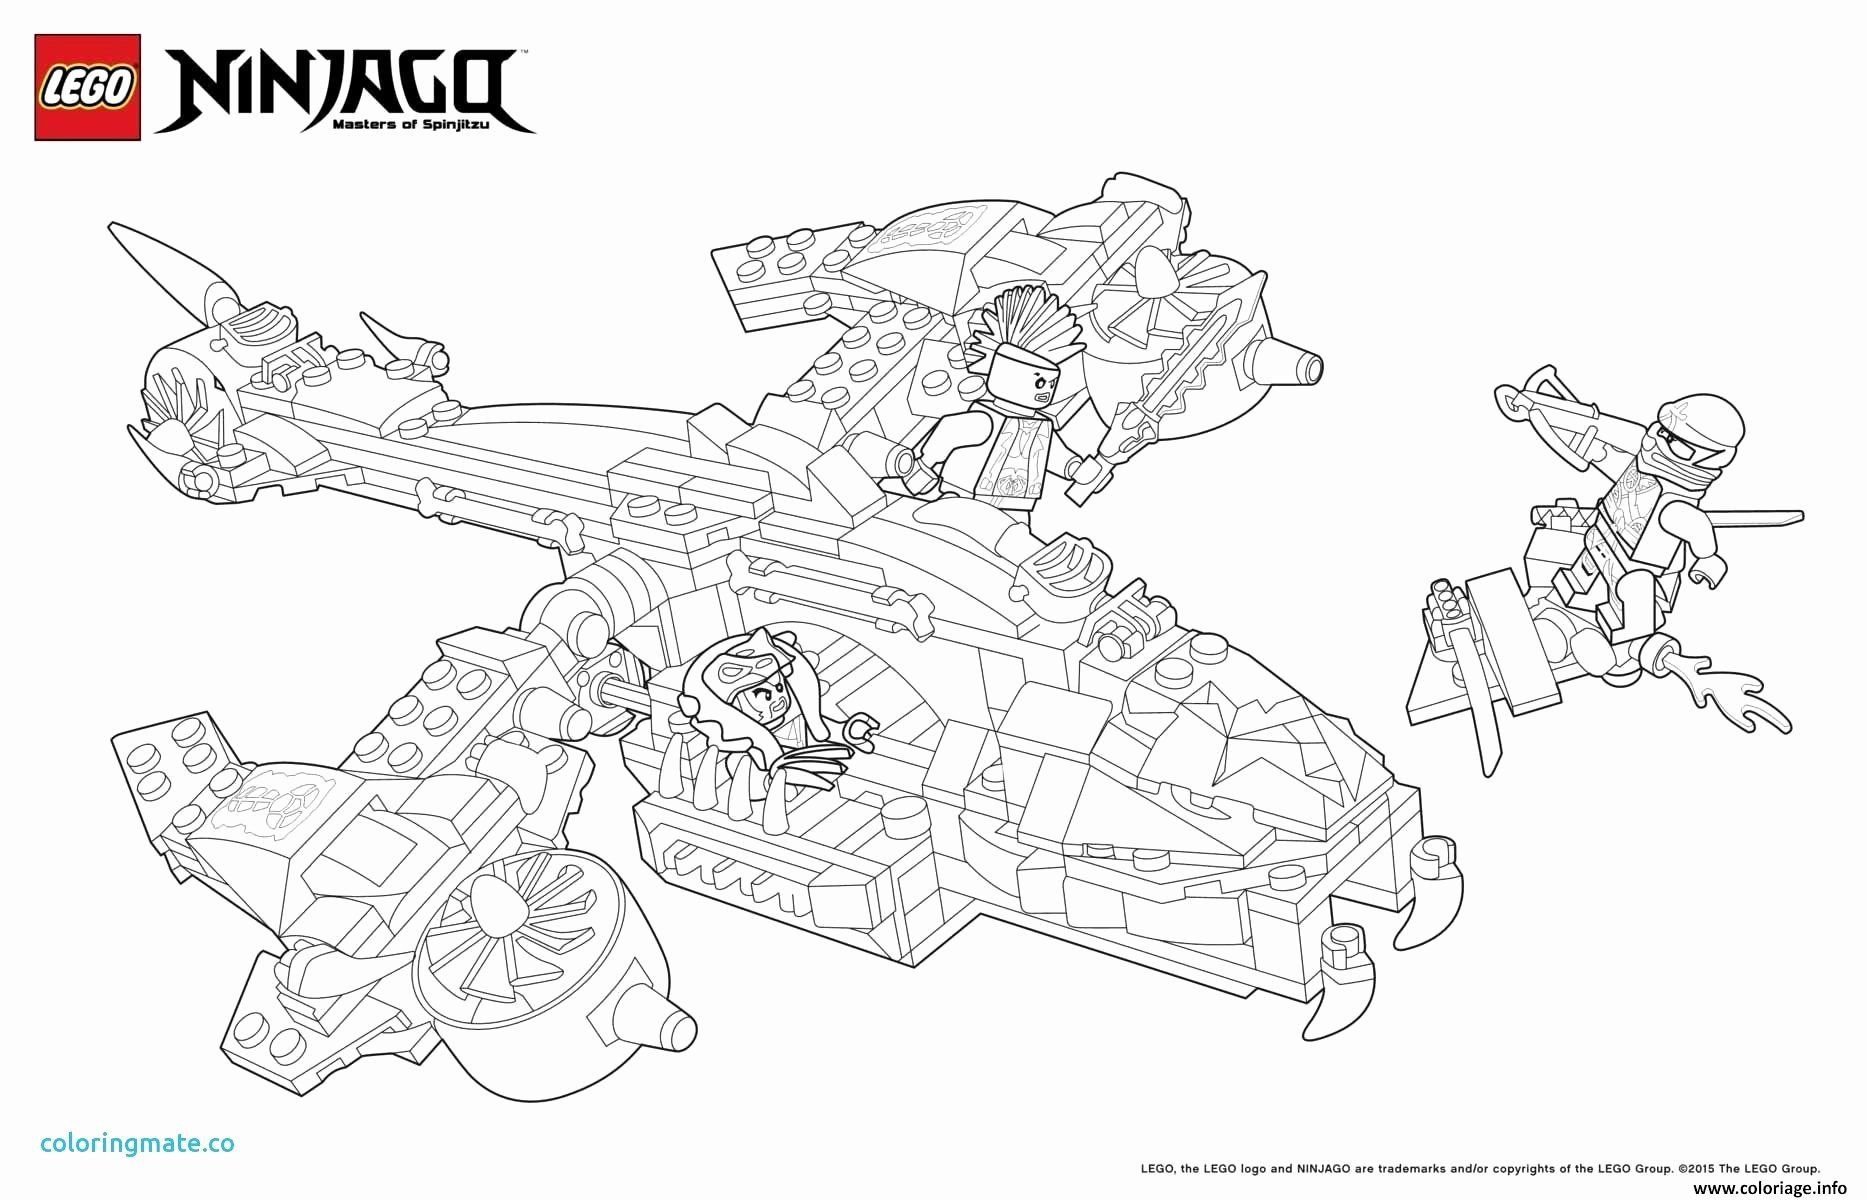 Super Hero Coloring Pages Inspirational Super Heroes Coloring Page Best Free Superhero Colorin Ninjago Coloring Pages Coloring Pages Super Hero Coloring Sheets